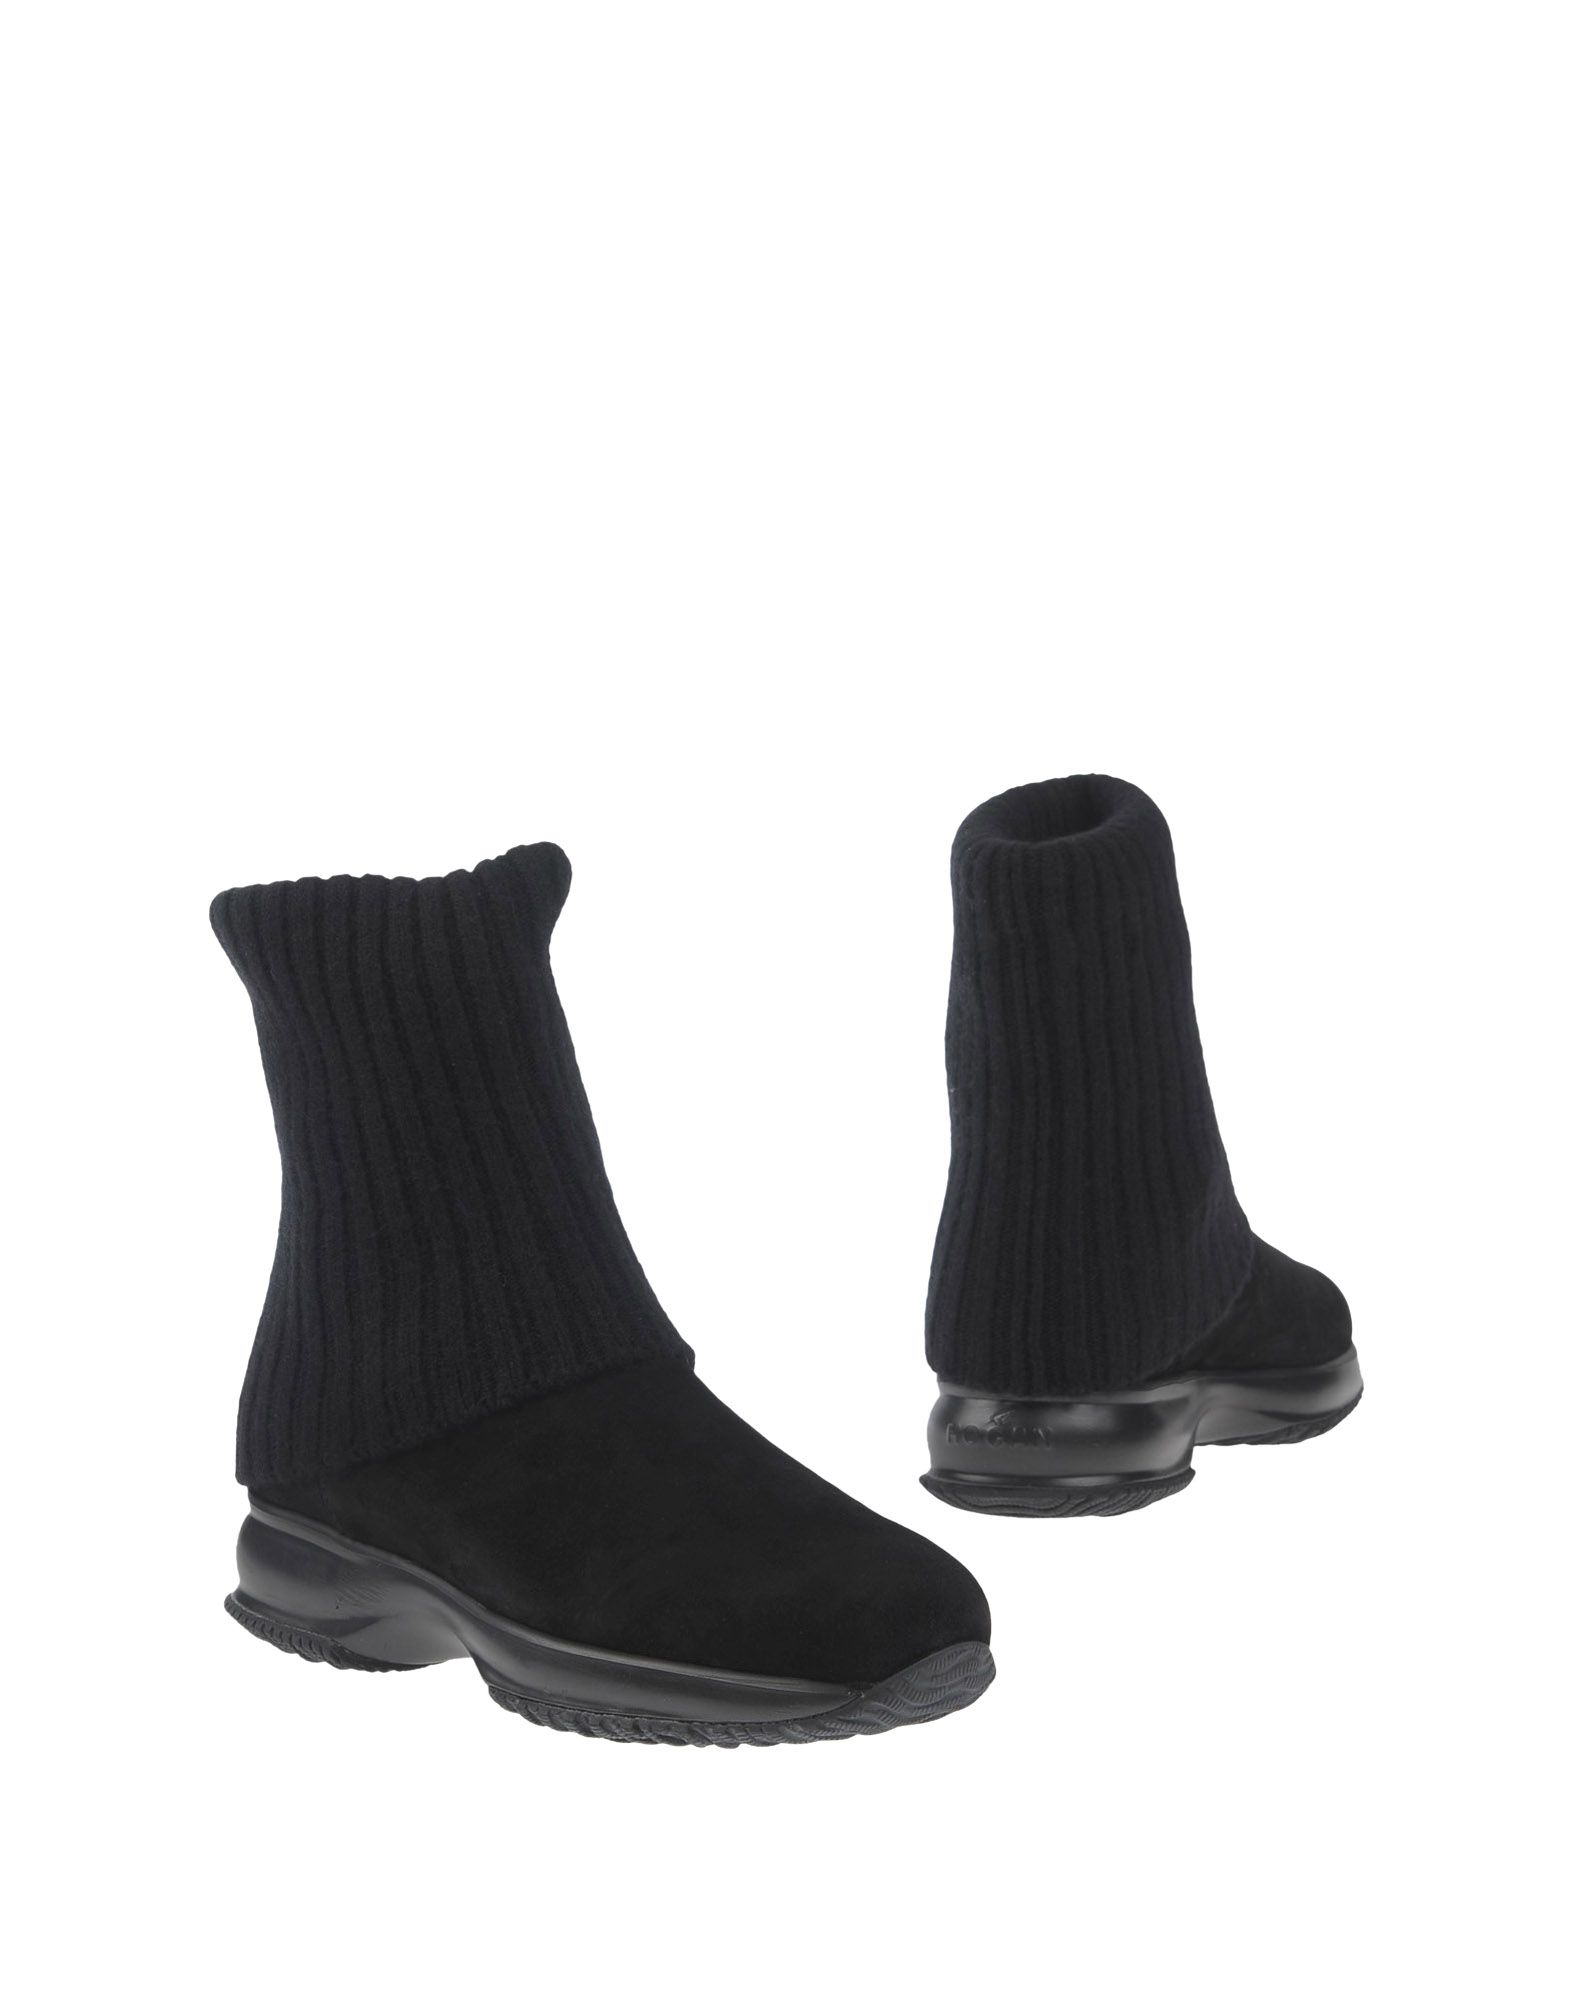 HOGAN Ankle boots. knitted, sueded effect, no appliqués, solid color, round toeline, wedge heel, leather lining, rubber sole, contains non-textile parts of animal origin. Textile fibers, Soft Leather